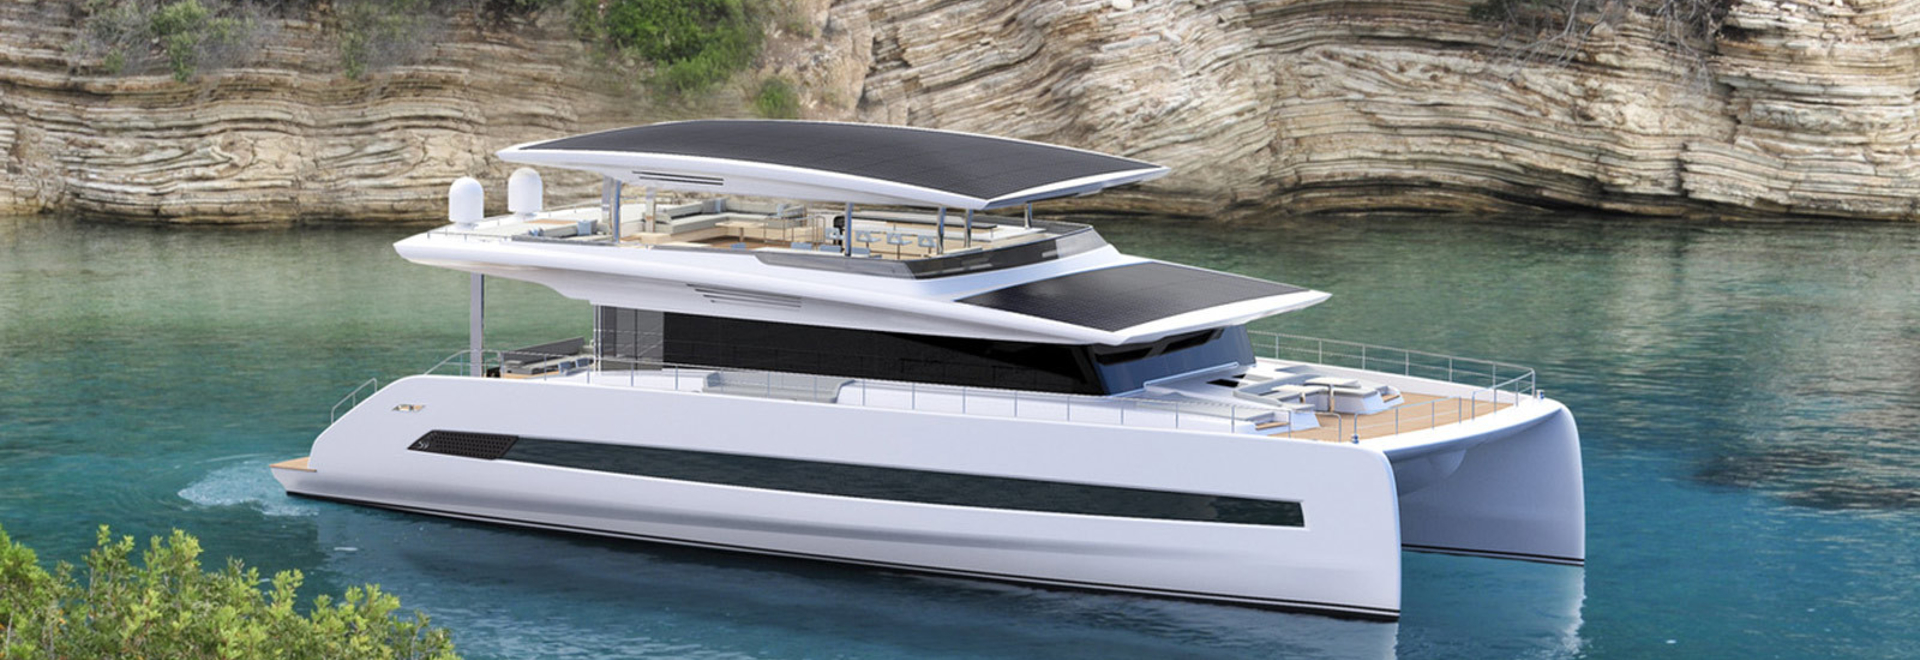 The new tri-deck version of the Silent 80